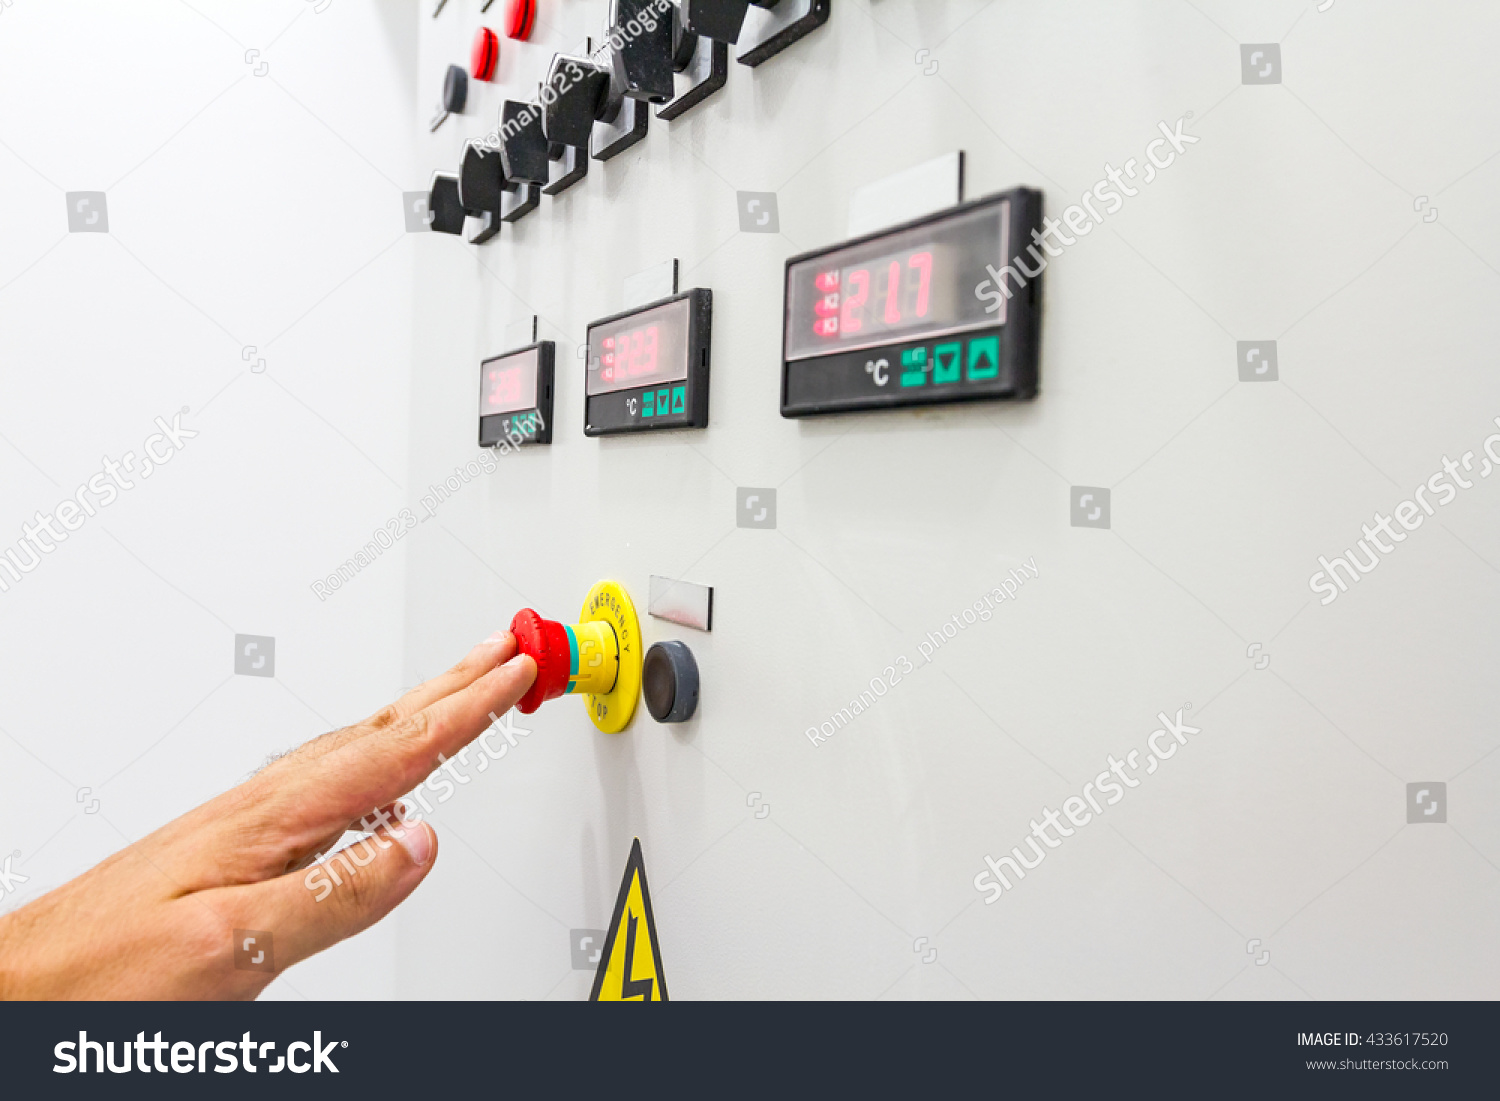 Activation Shutdown Fuse Box Display Digital Stock Photo